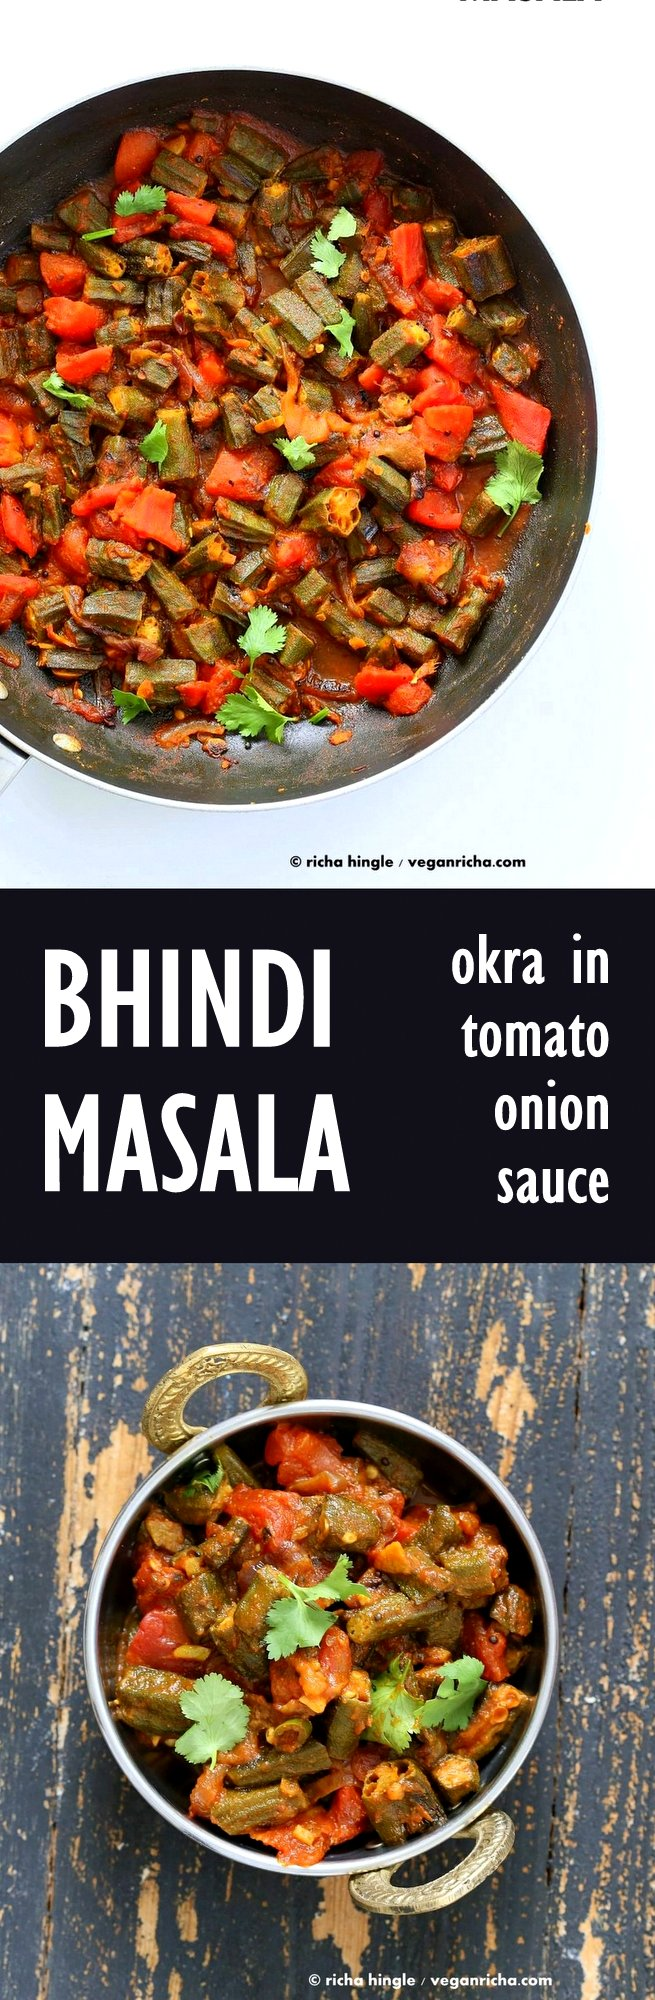 Bhindi Masala Recipe. Indian Okra Curry. Lightly spiced Okra in onion tomato curry. Restaurant style Masala Bhindi. #Vegan #Glutenfree #Soyfree #Indian #Recipe | VeganRicha.com